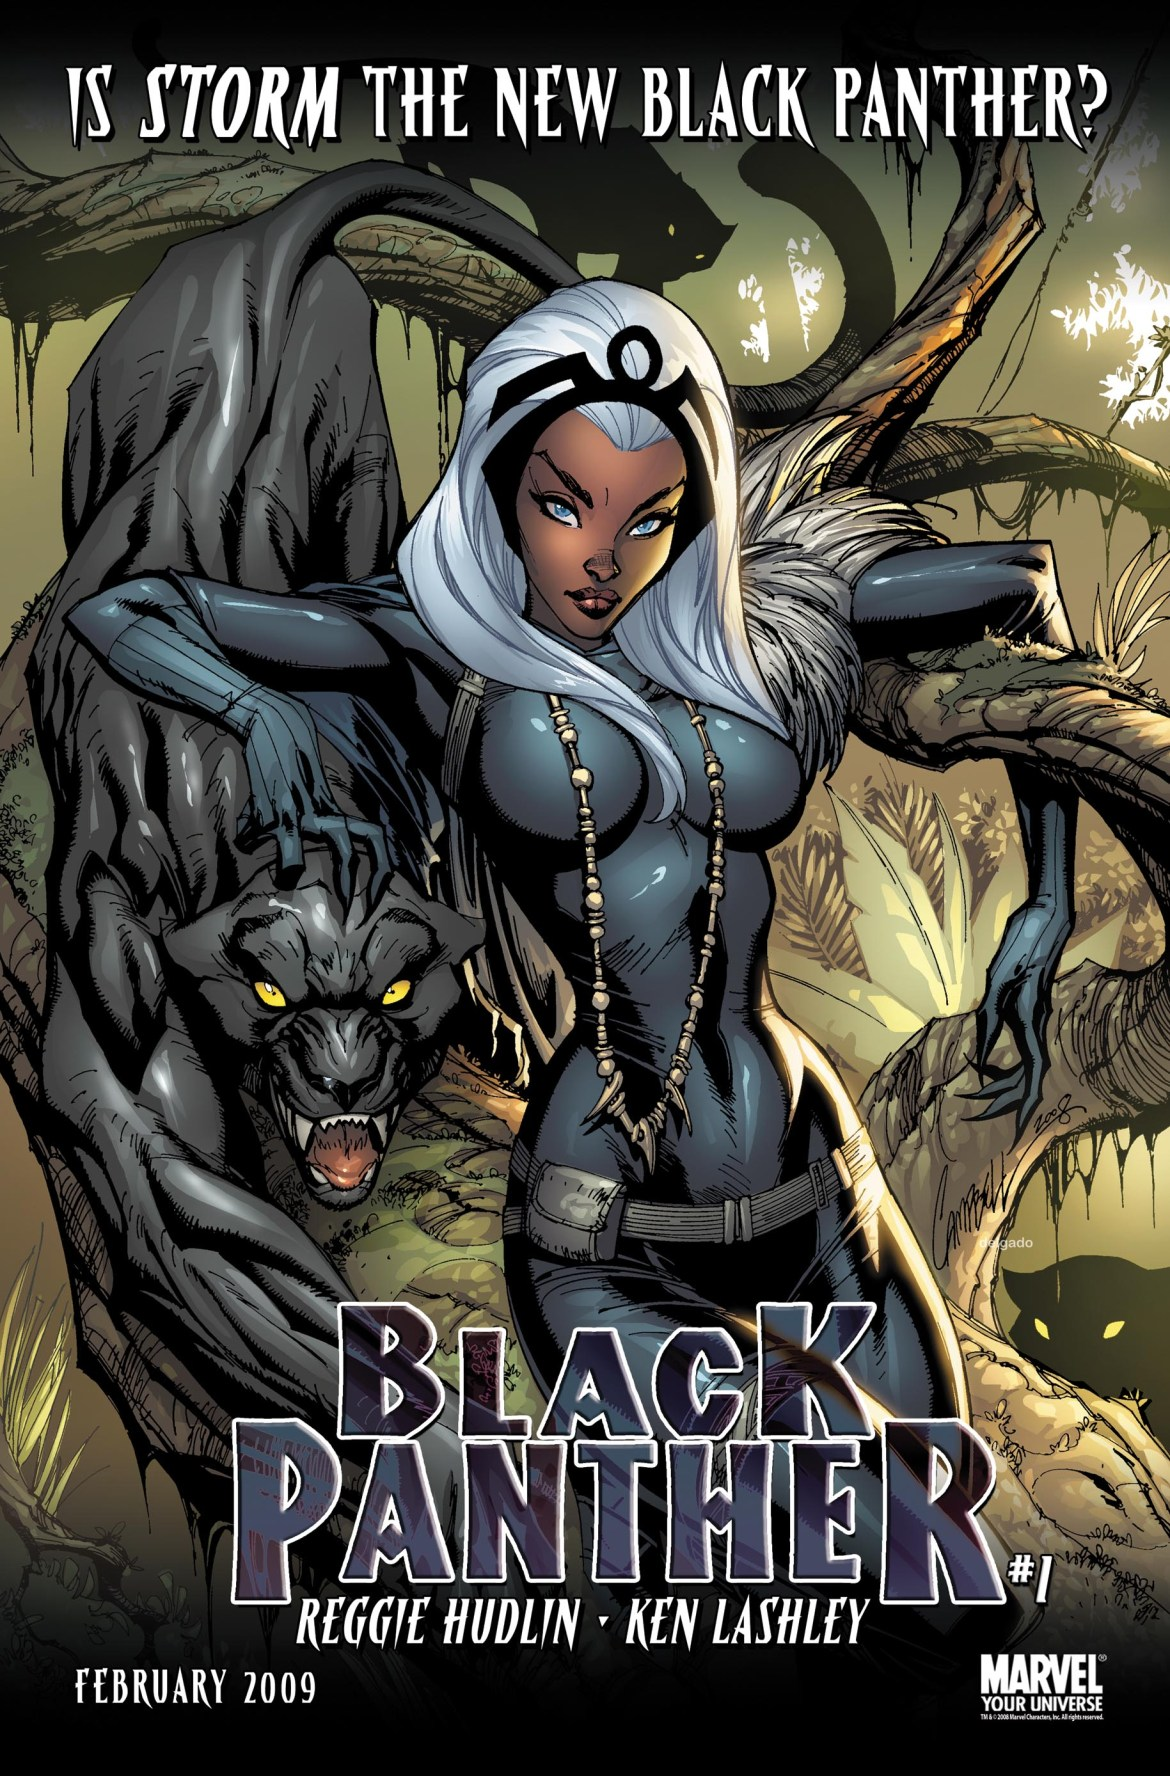 IsStormTheNewBlackPanther Is Storm The New Black Panther?